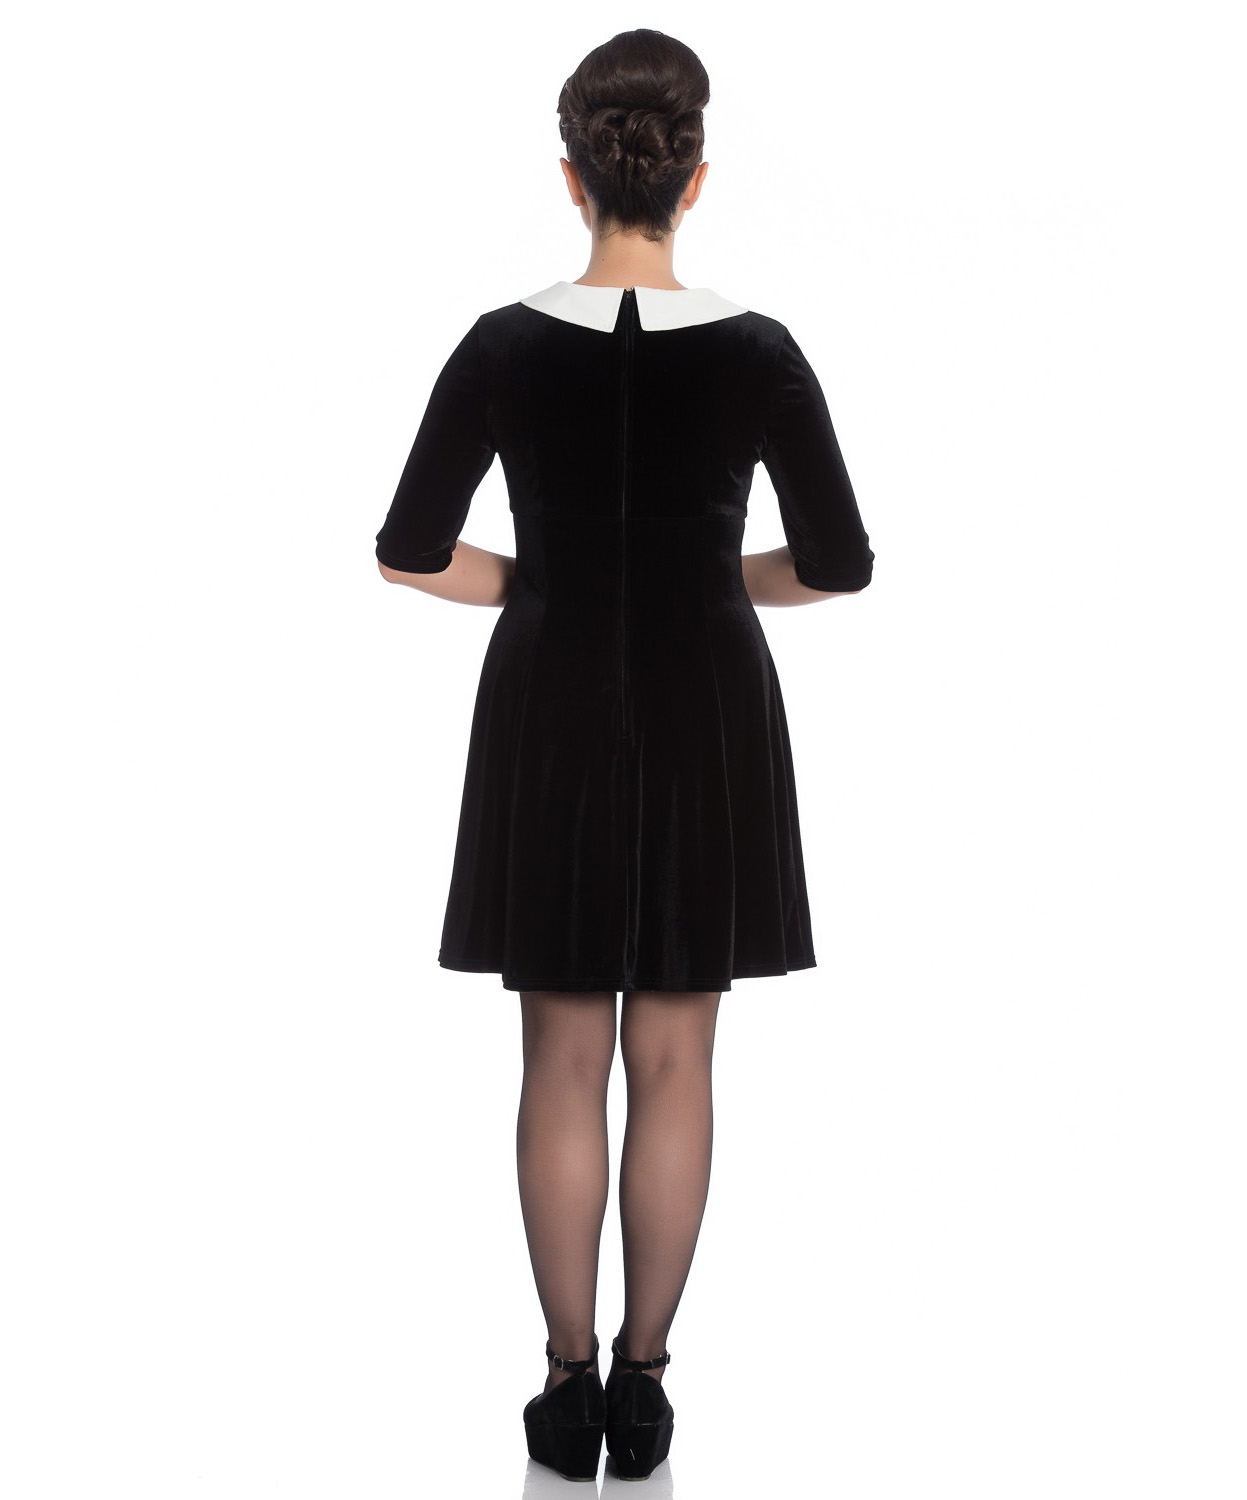 Hell-Bunny-Mini-Skater-Dress-Festive-Christmas-SNOWY-Black-Snowflakes-All-Sizes thumbnail 9